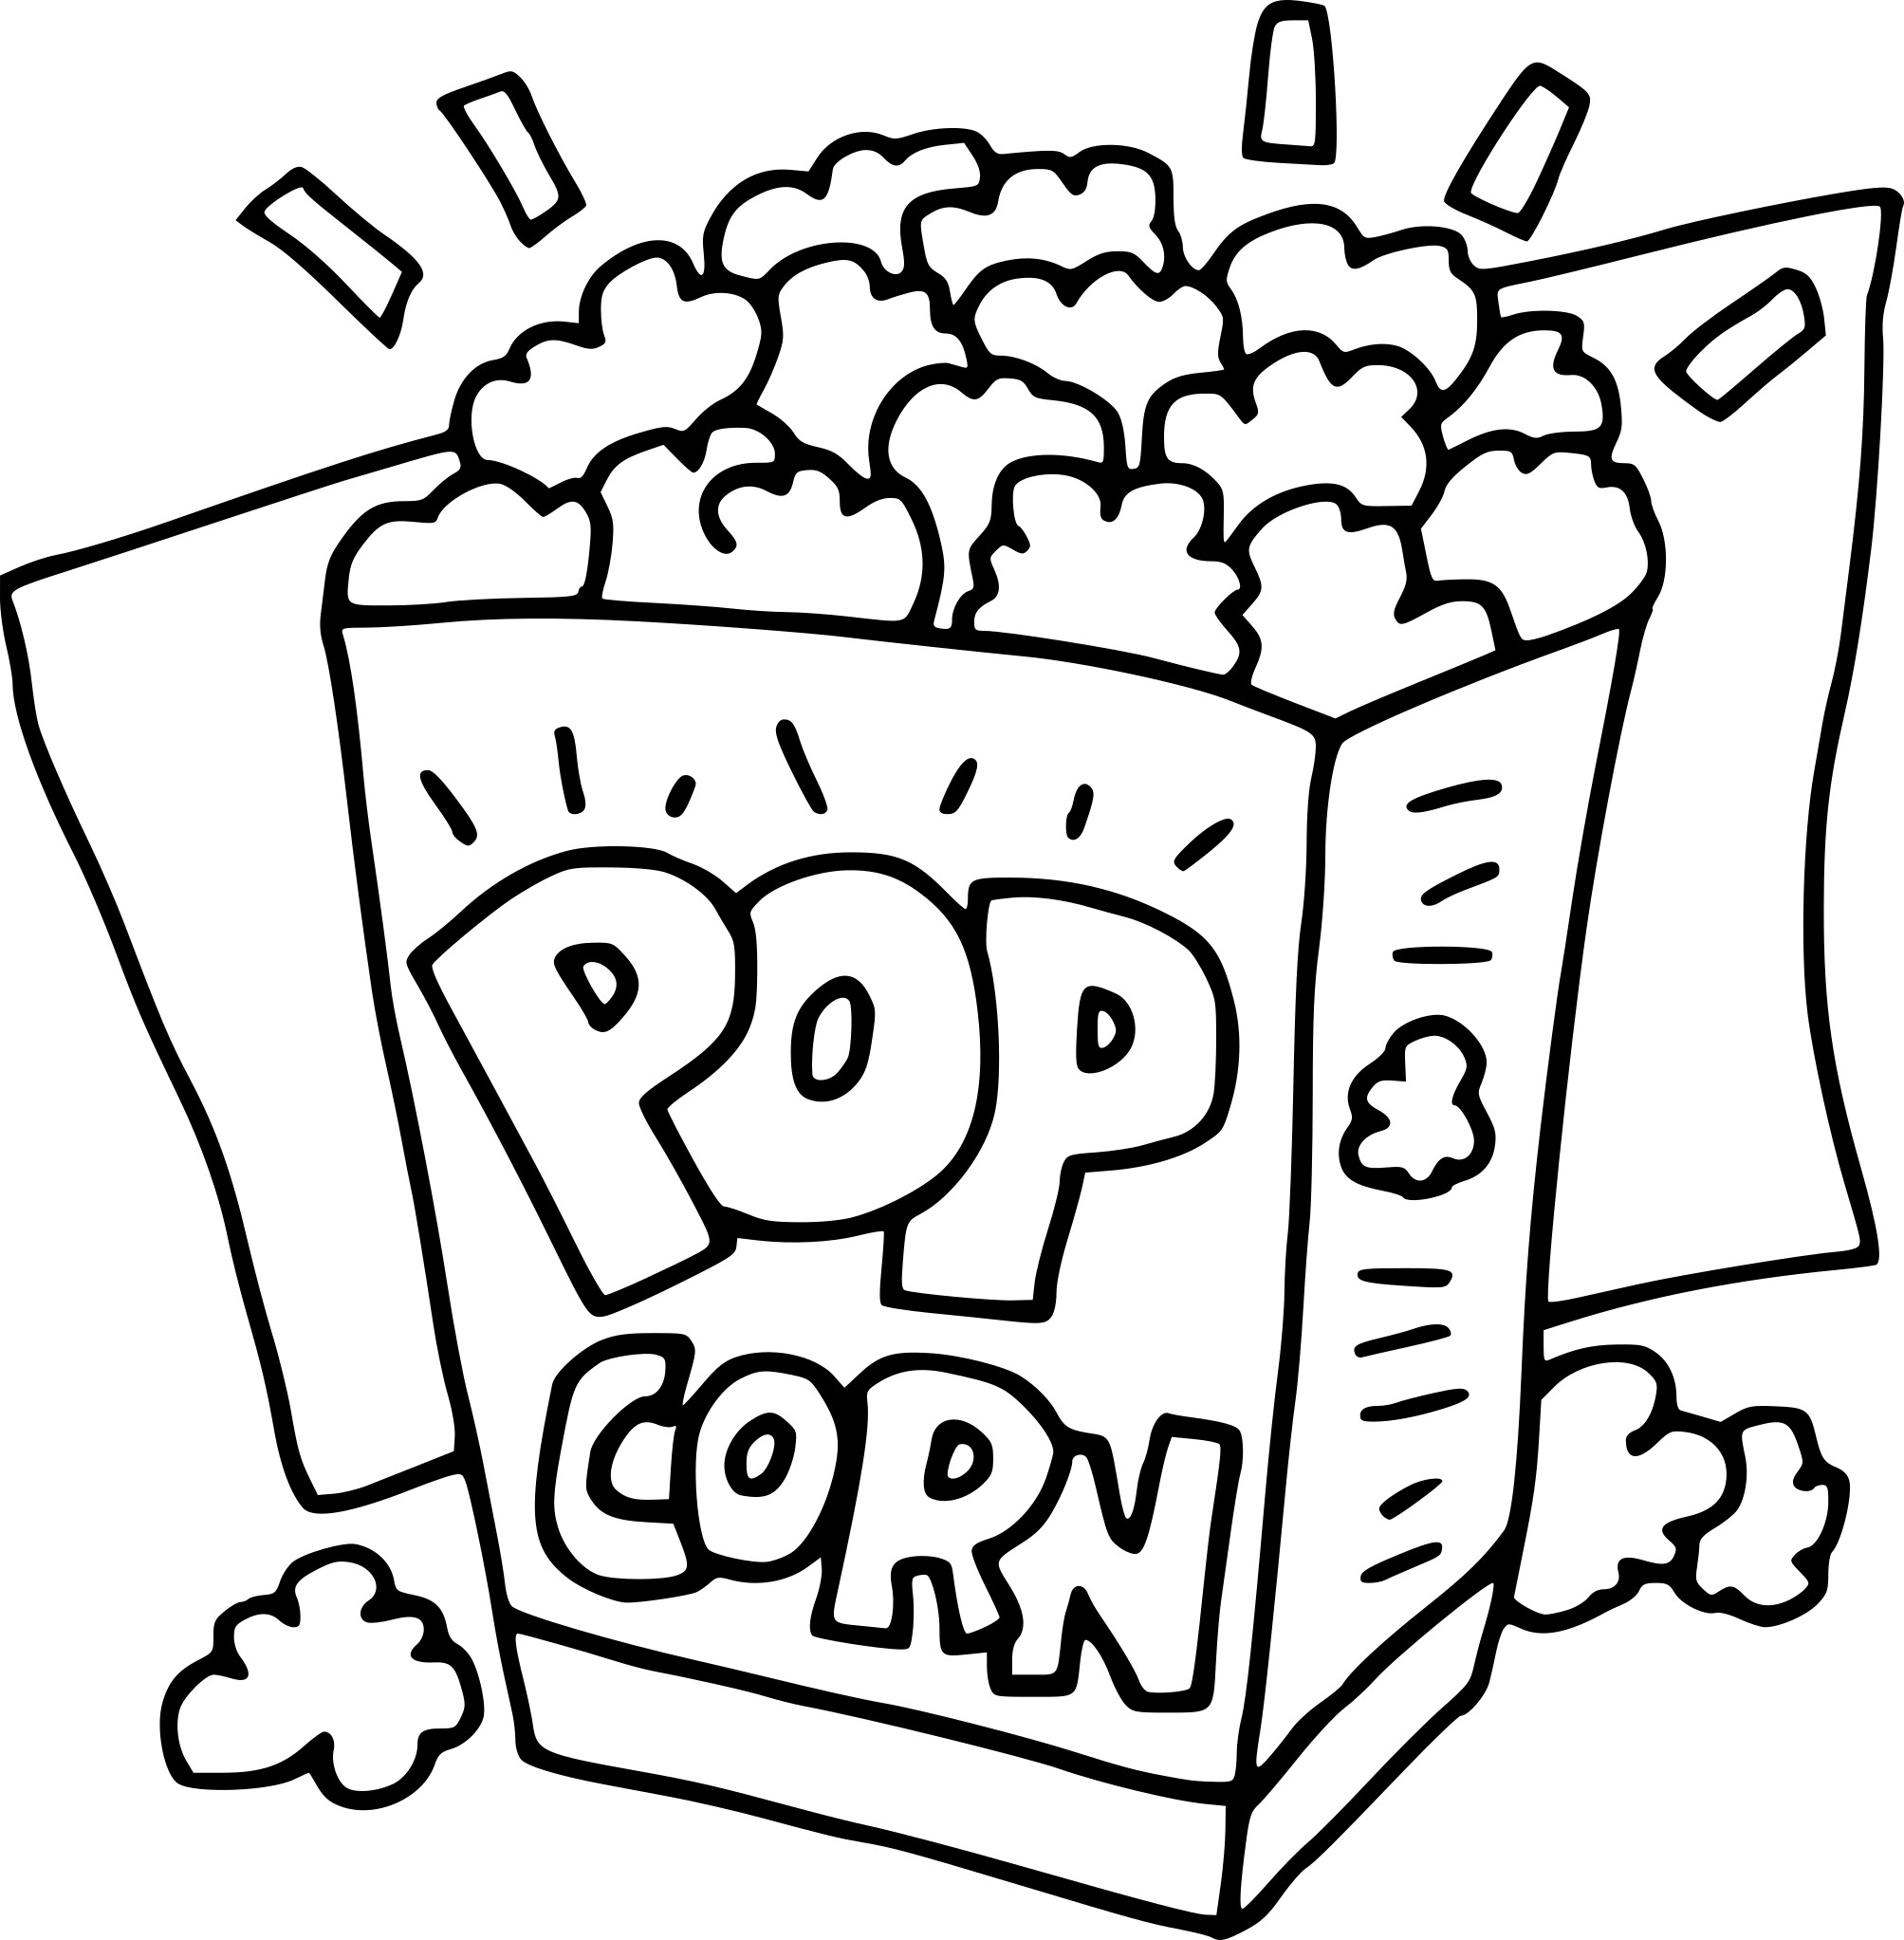 Popcorn on animal coloring pages